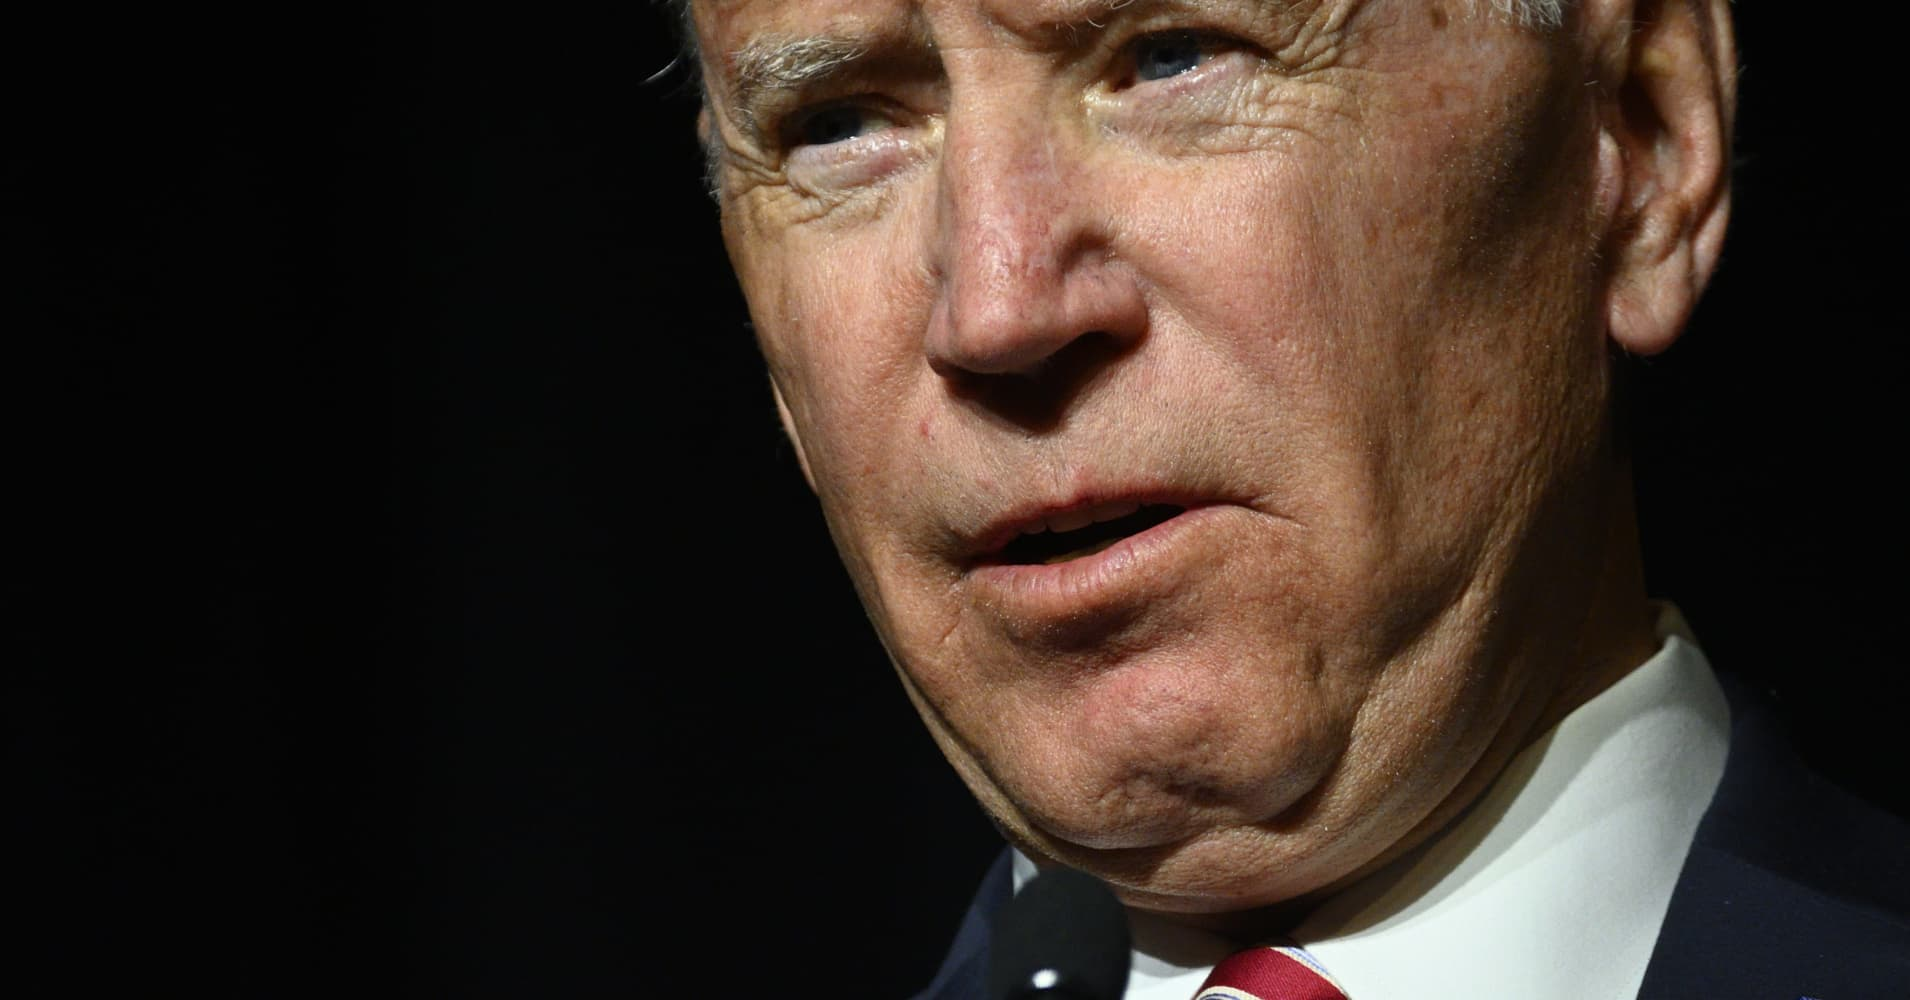 Biden privately tells supporters he's planning a 2020 White House run: WSJ